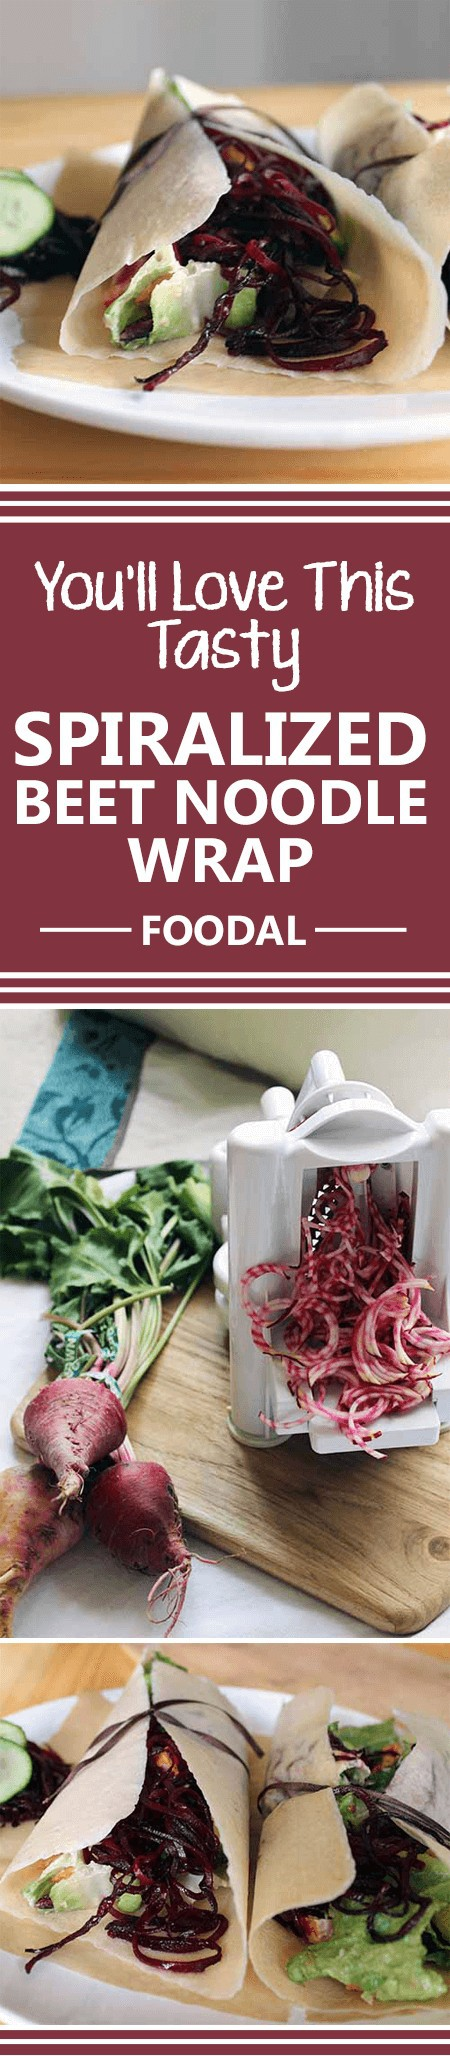 Looking for a new way to put your beets to good use? Maybe you're tired of the tried-and-true juicing and pickling routes. How about spiralizing them, and adding them to wraps? If you answered yes to all of the above, we have the perfect recipe for you. Not only is it super healthy, it also comes together quickly, requiring just a little cooking and chopping. https://foodal.com/knowledge/paleo/spiralized-beet-noodle-wrap/